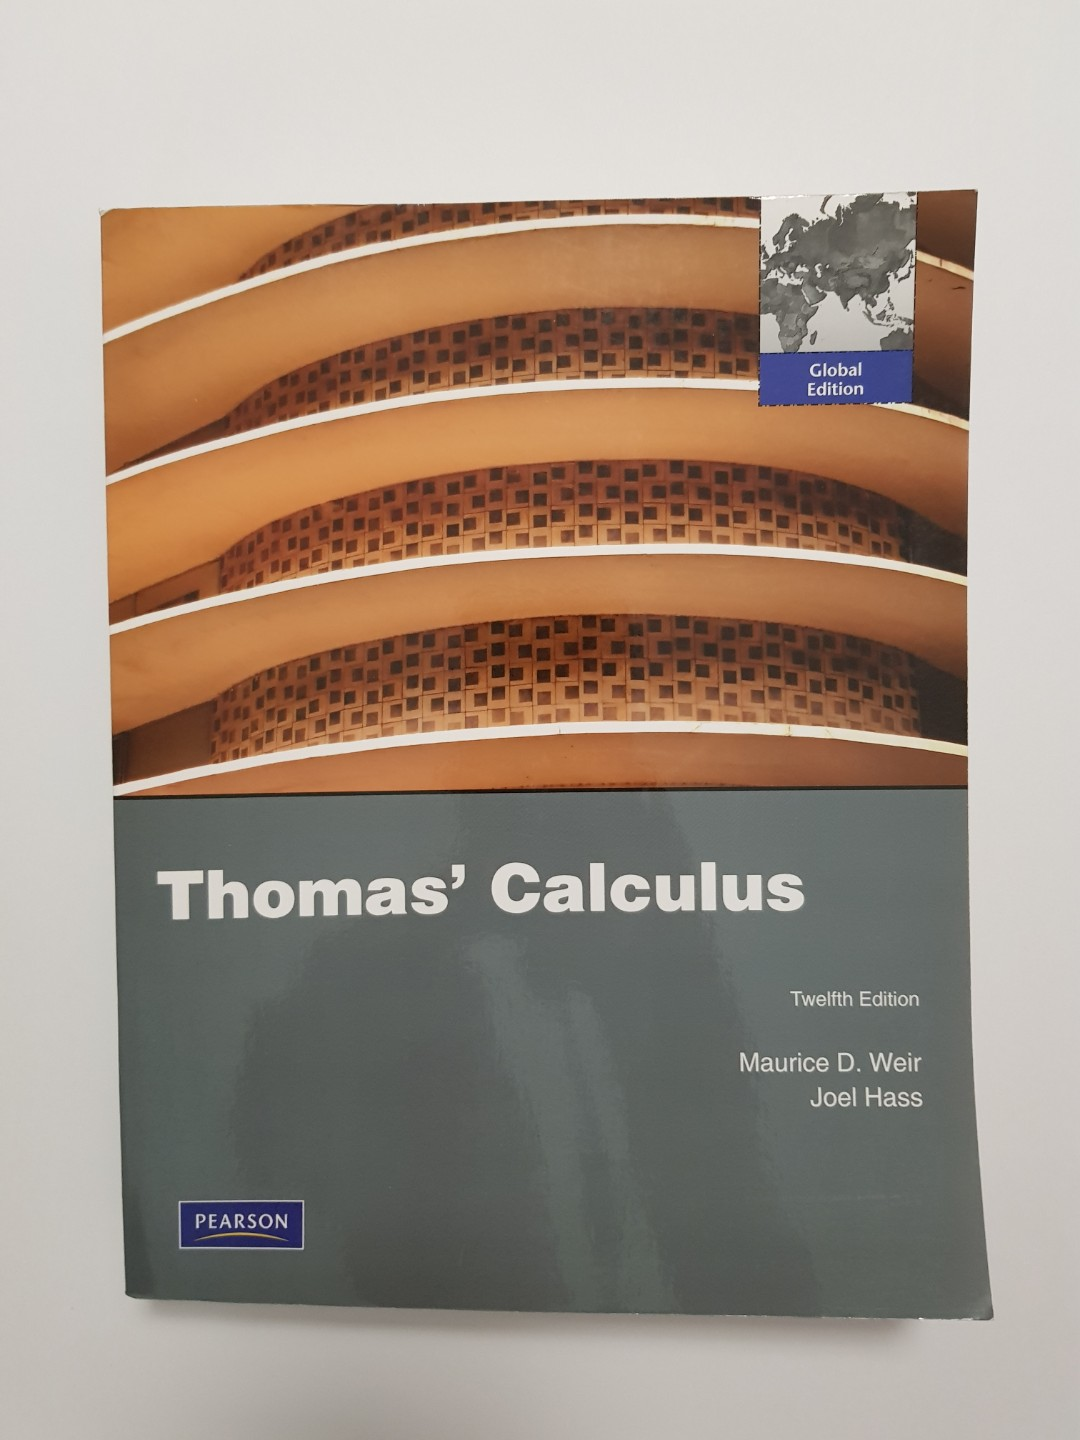 Thomas' Calculus Twelfth Edition, Books & Stationery, Textbooks, Tertiary  on Carousell